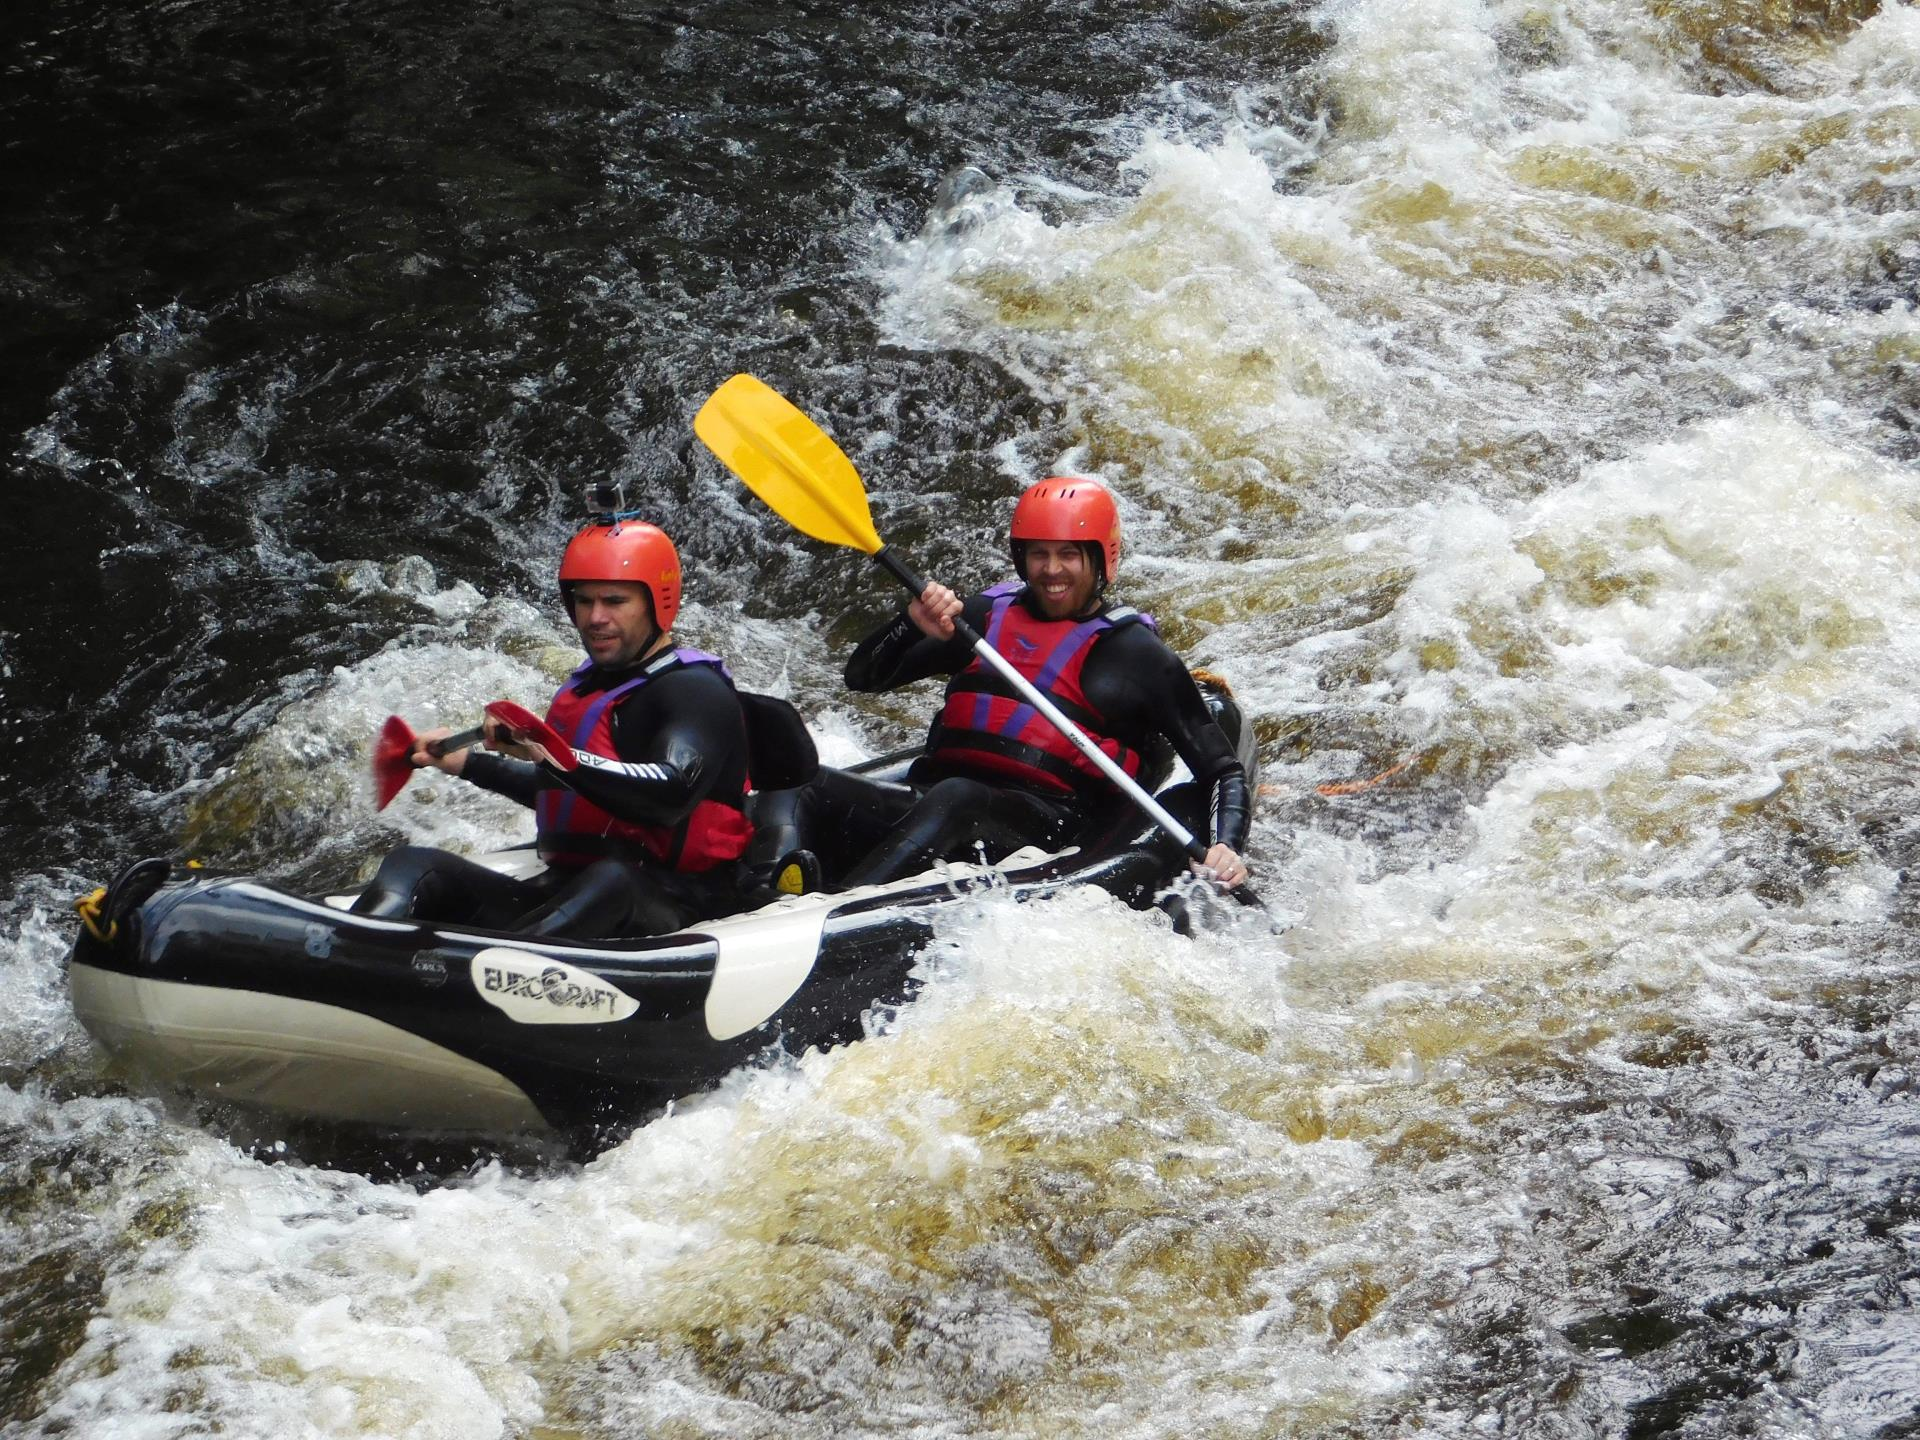 Ultimate challenge at National White Water Centre